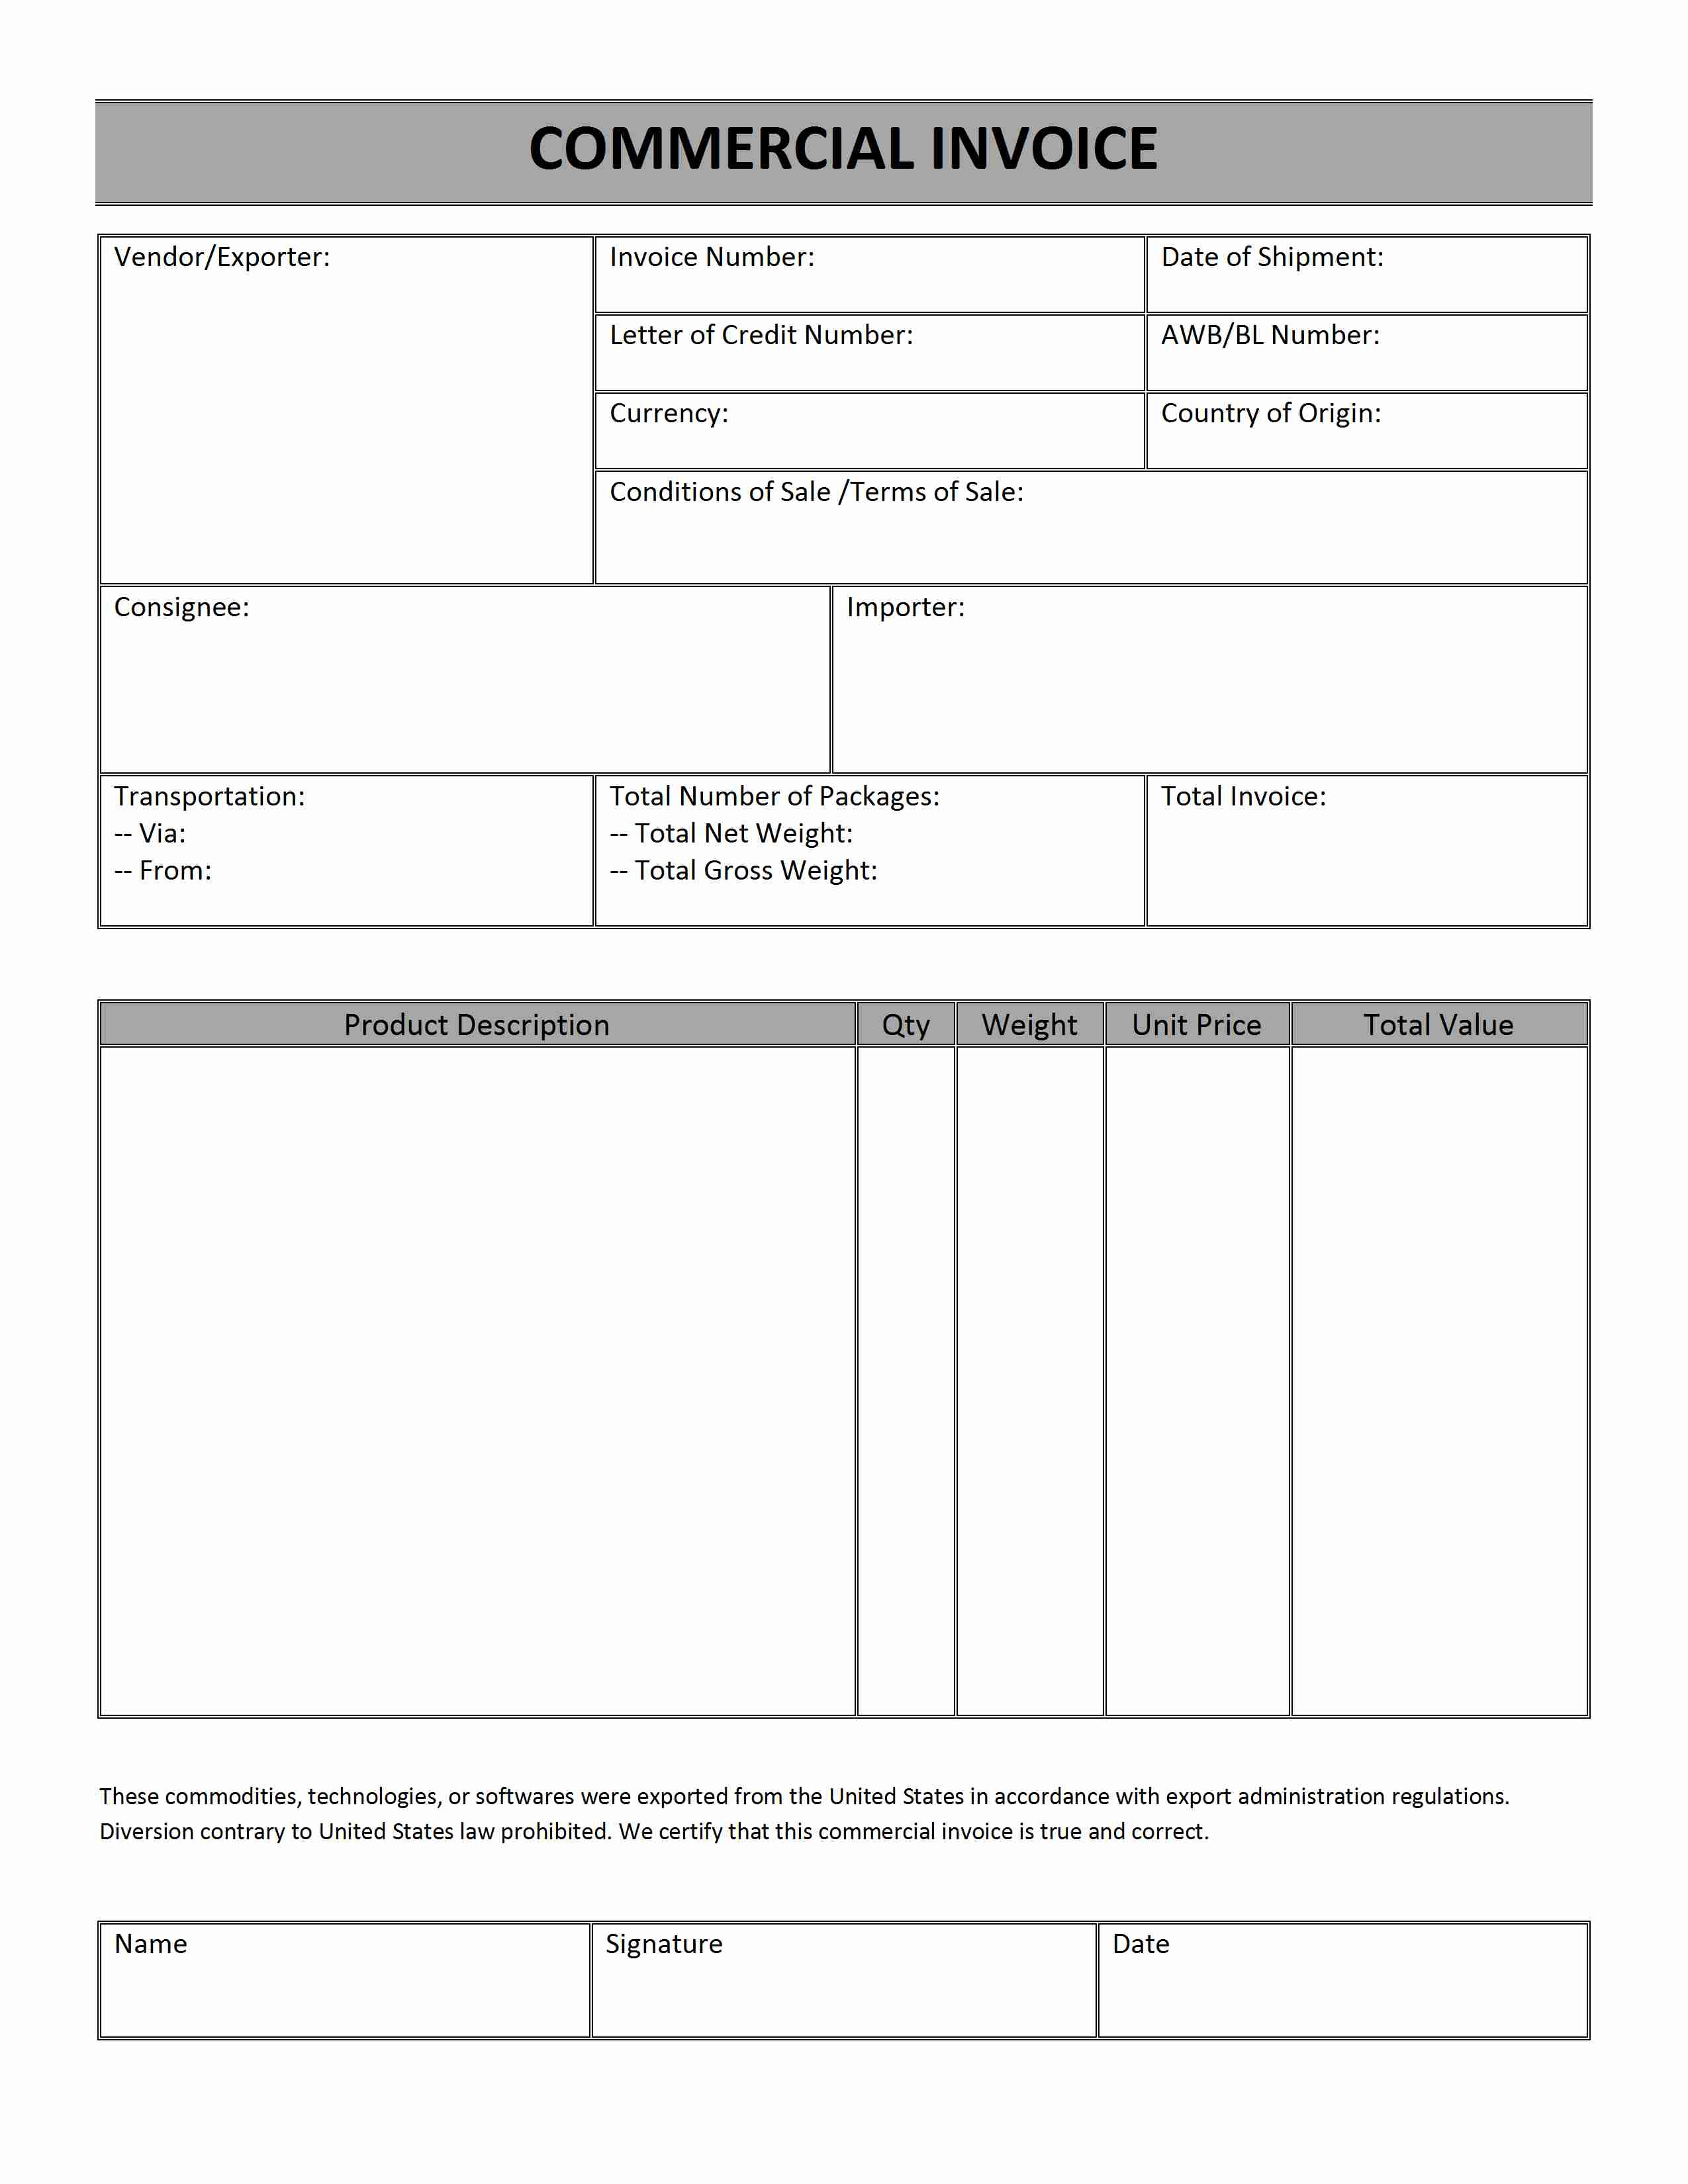 Sandiegolocksmithsus  Ravishing Printable Sales Invoice Simple Invoice Form Free Invoice  With Great Printable Receipt Free  Free Printable Raffle Tickets  Receipt   Printable With Astounding Auto Dealer Invoice Price Also Invoice Log Template In Addition Invoice Books With Company Logo And Vat On Invoice As Well As Matching Invoices Additionally Natwest Invoice Finance From Happytomco With Sandiegolocksmithsus  Great Printable Sales Invoice Simple Invoice Form Free Invoice  With Astounding Printable Receipt Free  Free Printable Raffle Tickets  Receipt   Printable And Ravishing Auto Dealer Invoice Price Also Invoice Log Template In Addition Invoice Books With Company Logo From Happytomco